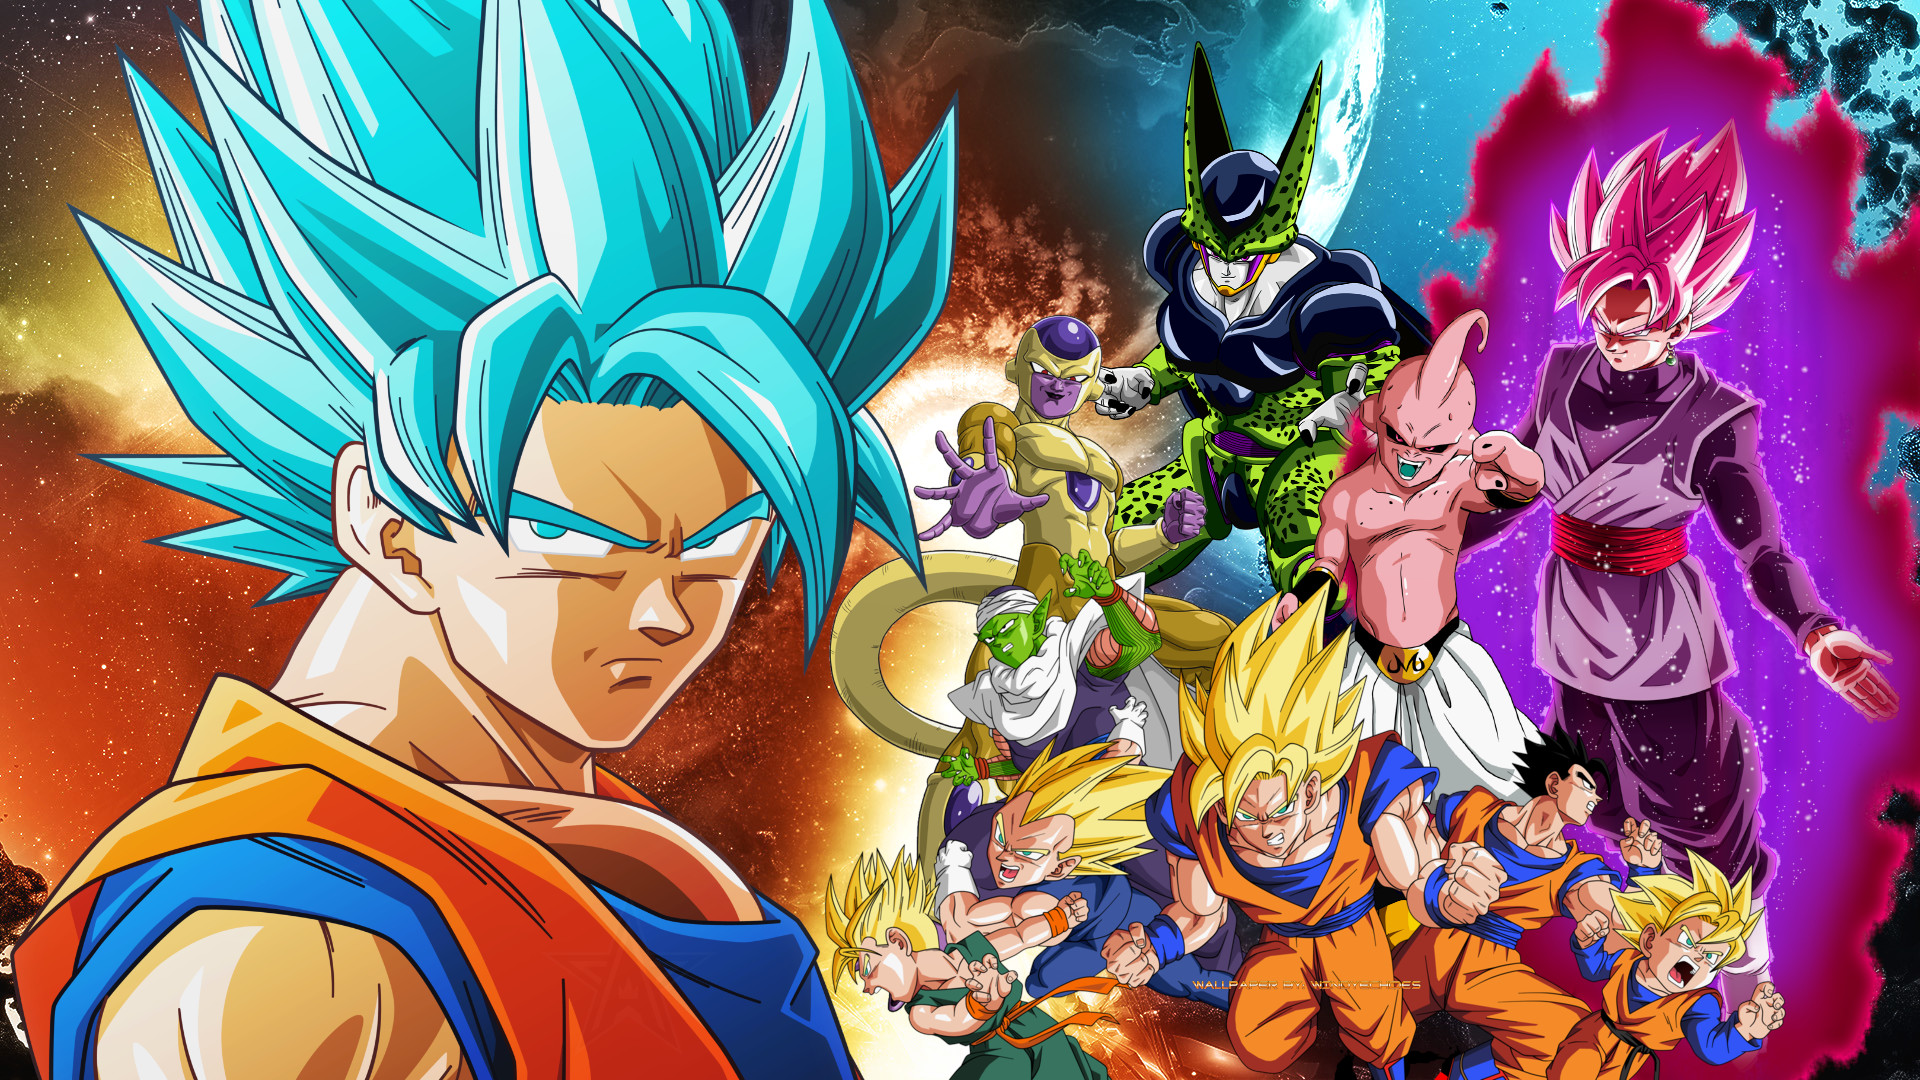 3d Wallpaper Of Dragon Ball Z Dragon Ball Z 1080p Wallpaper 64 Images